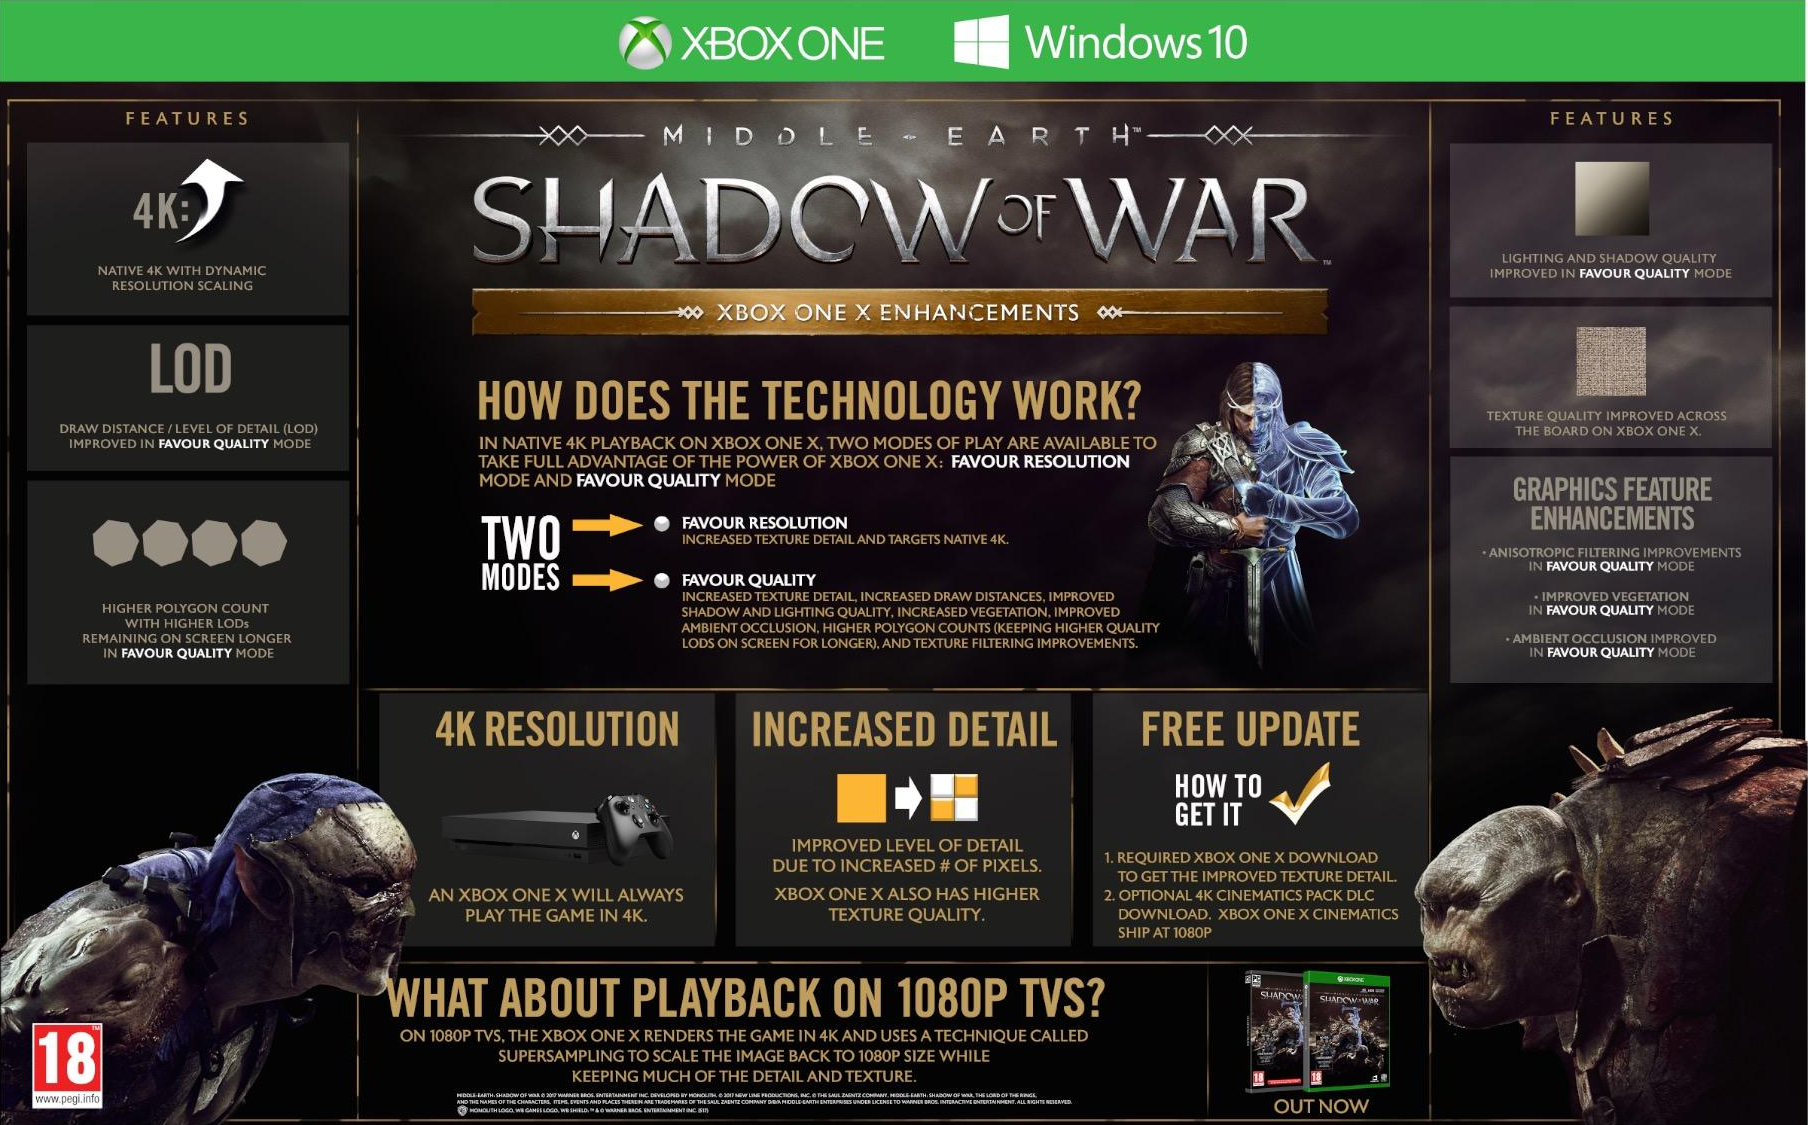 Middle-Earth Shadow of War Xbox One X Update